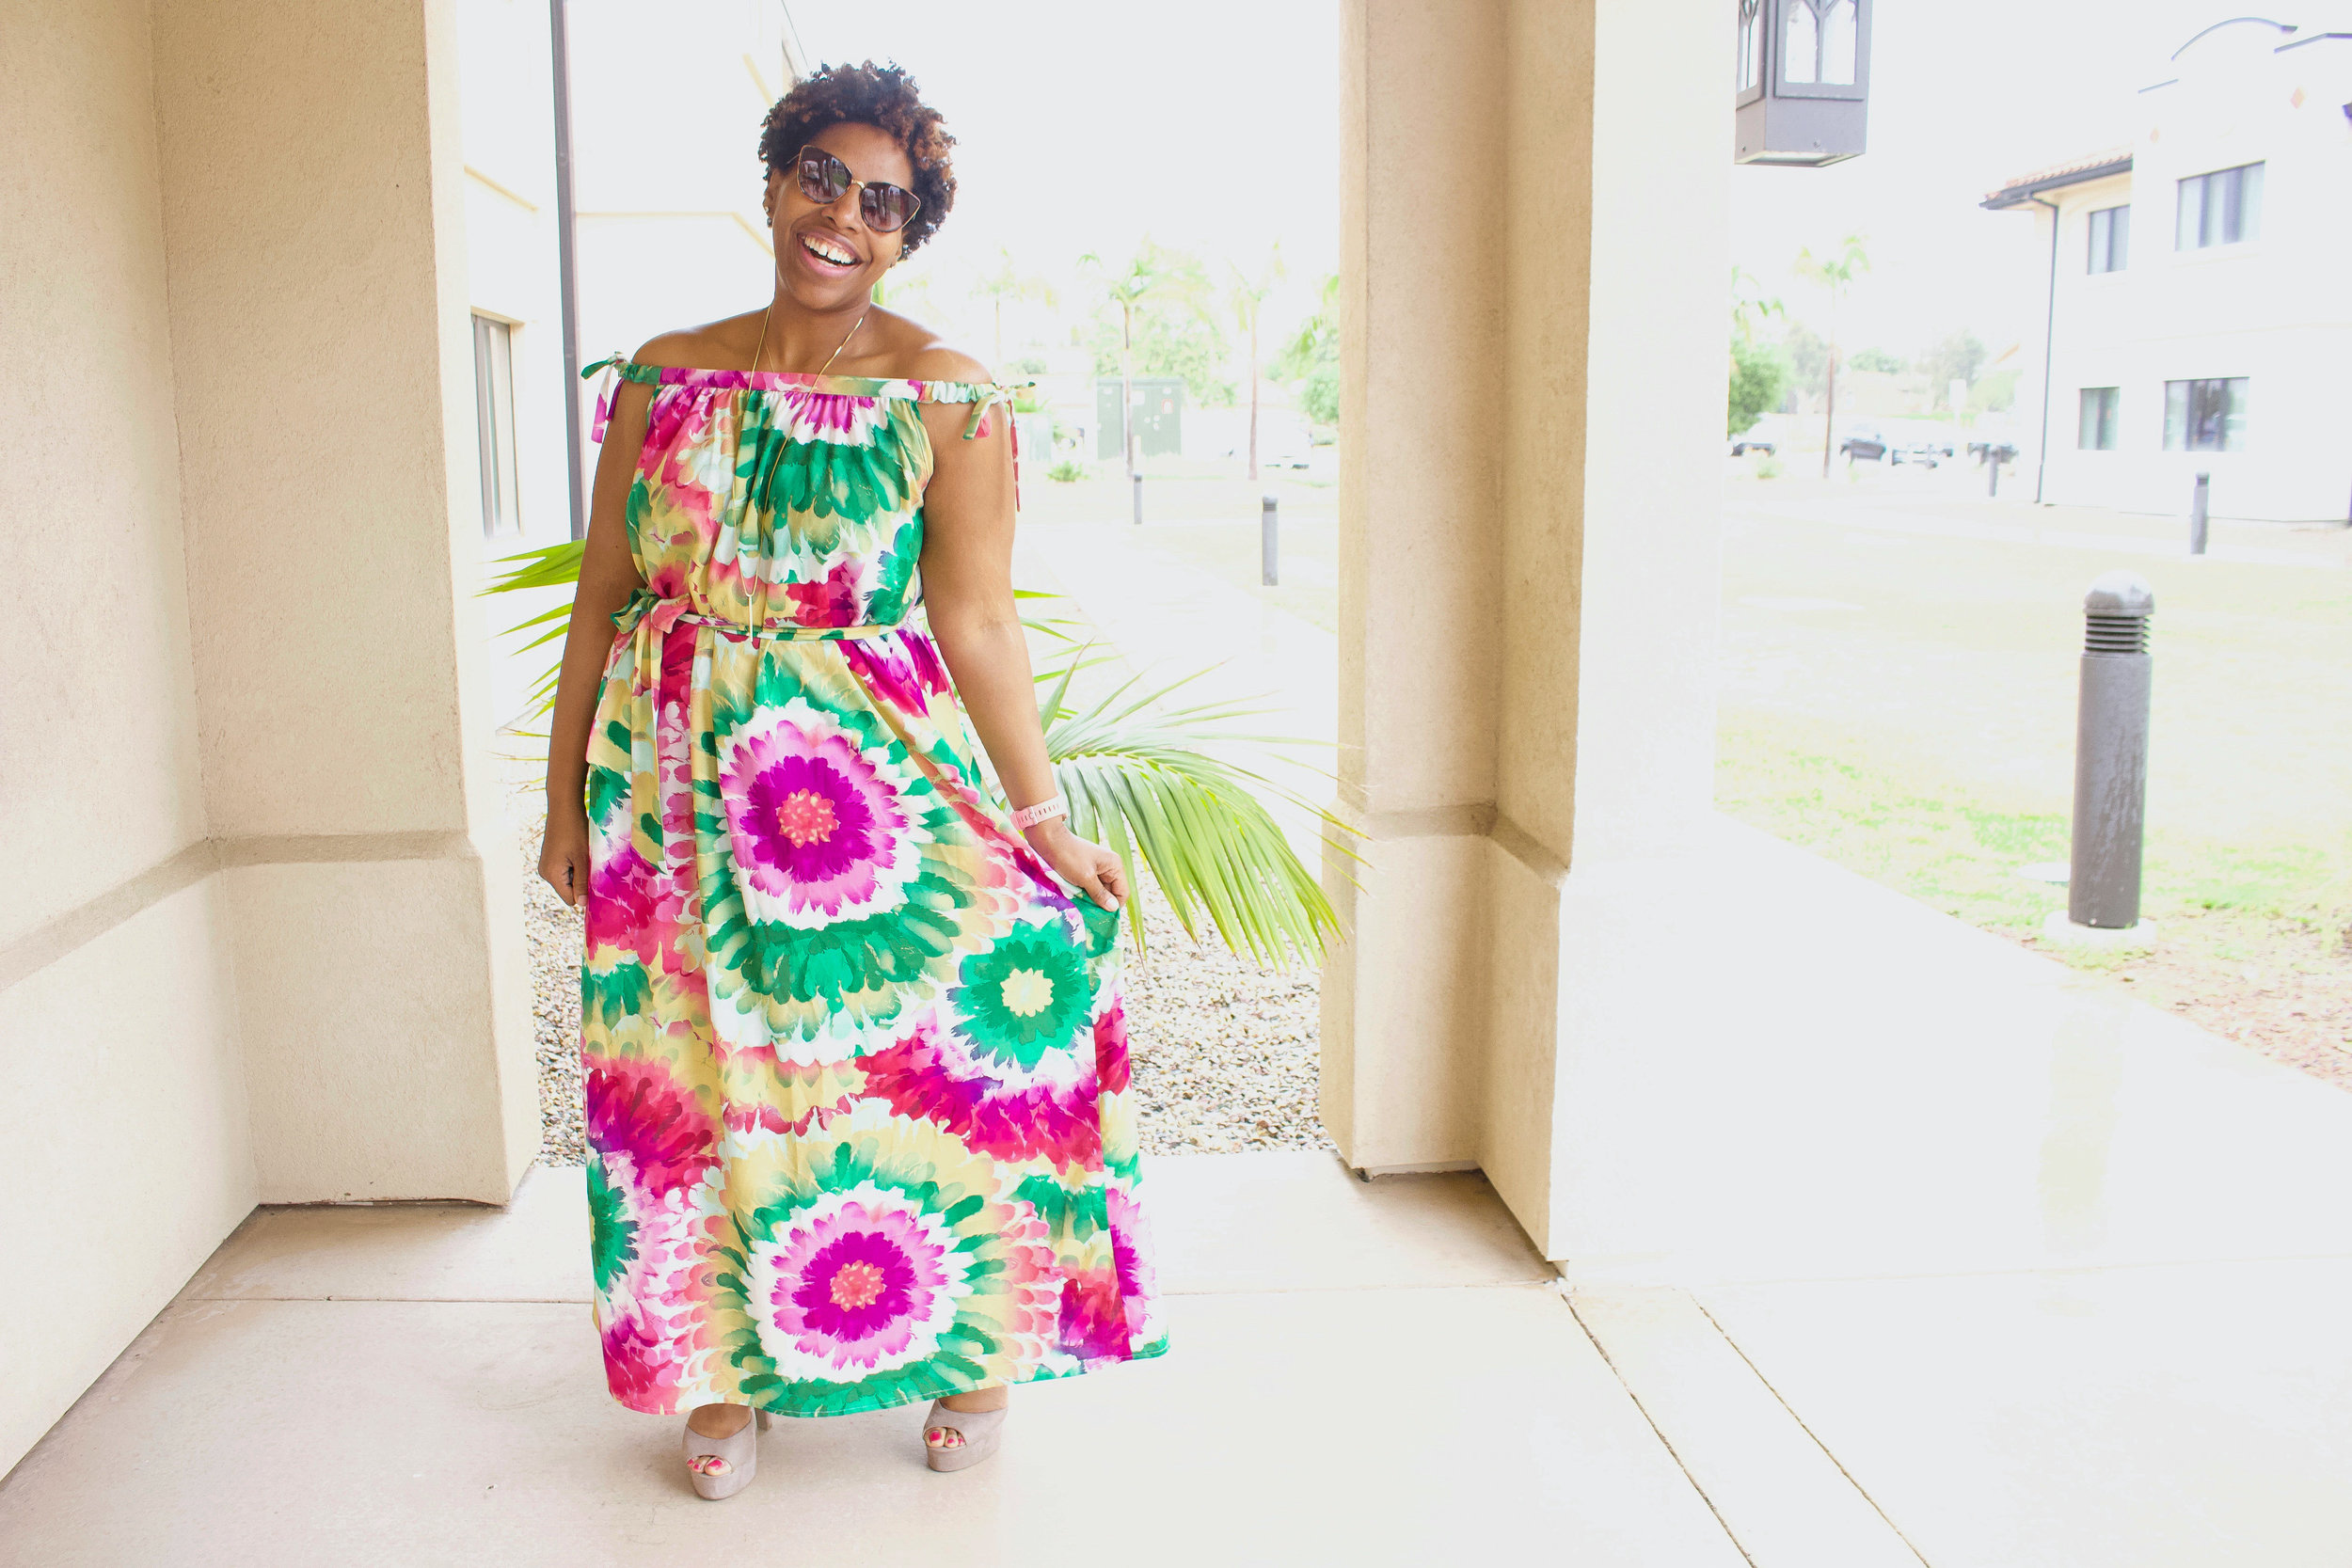 * The post is in collaboration with Fashion Fabrics Club. Fabrics used were gifted to me from Fashion Fabrics Club! Review and opinions mentioned in this post are my own.